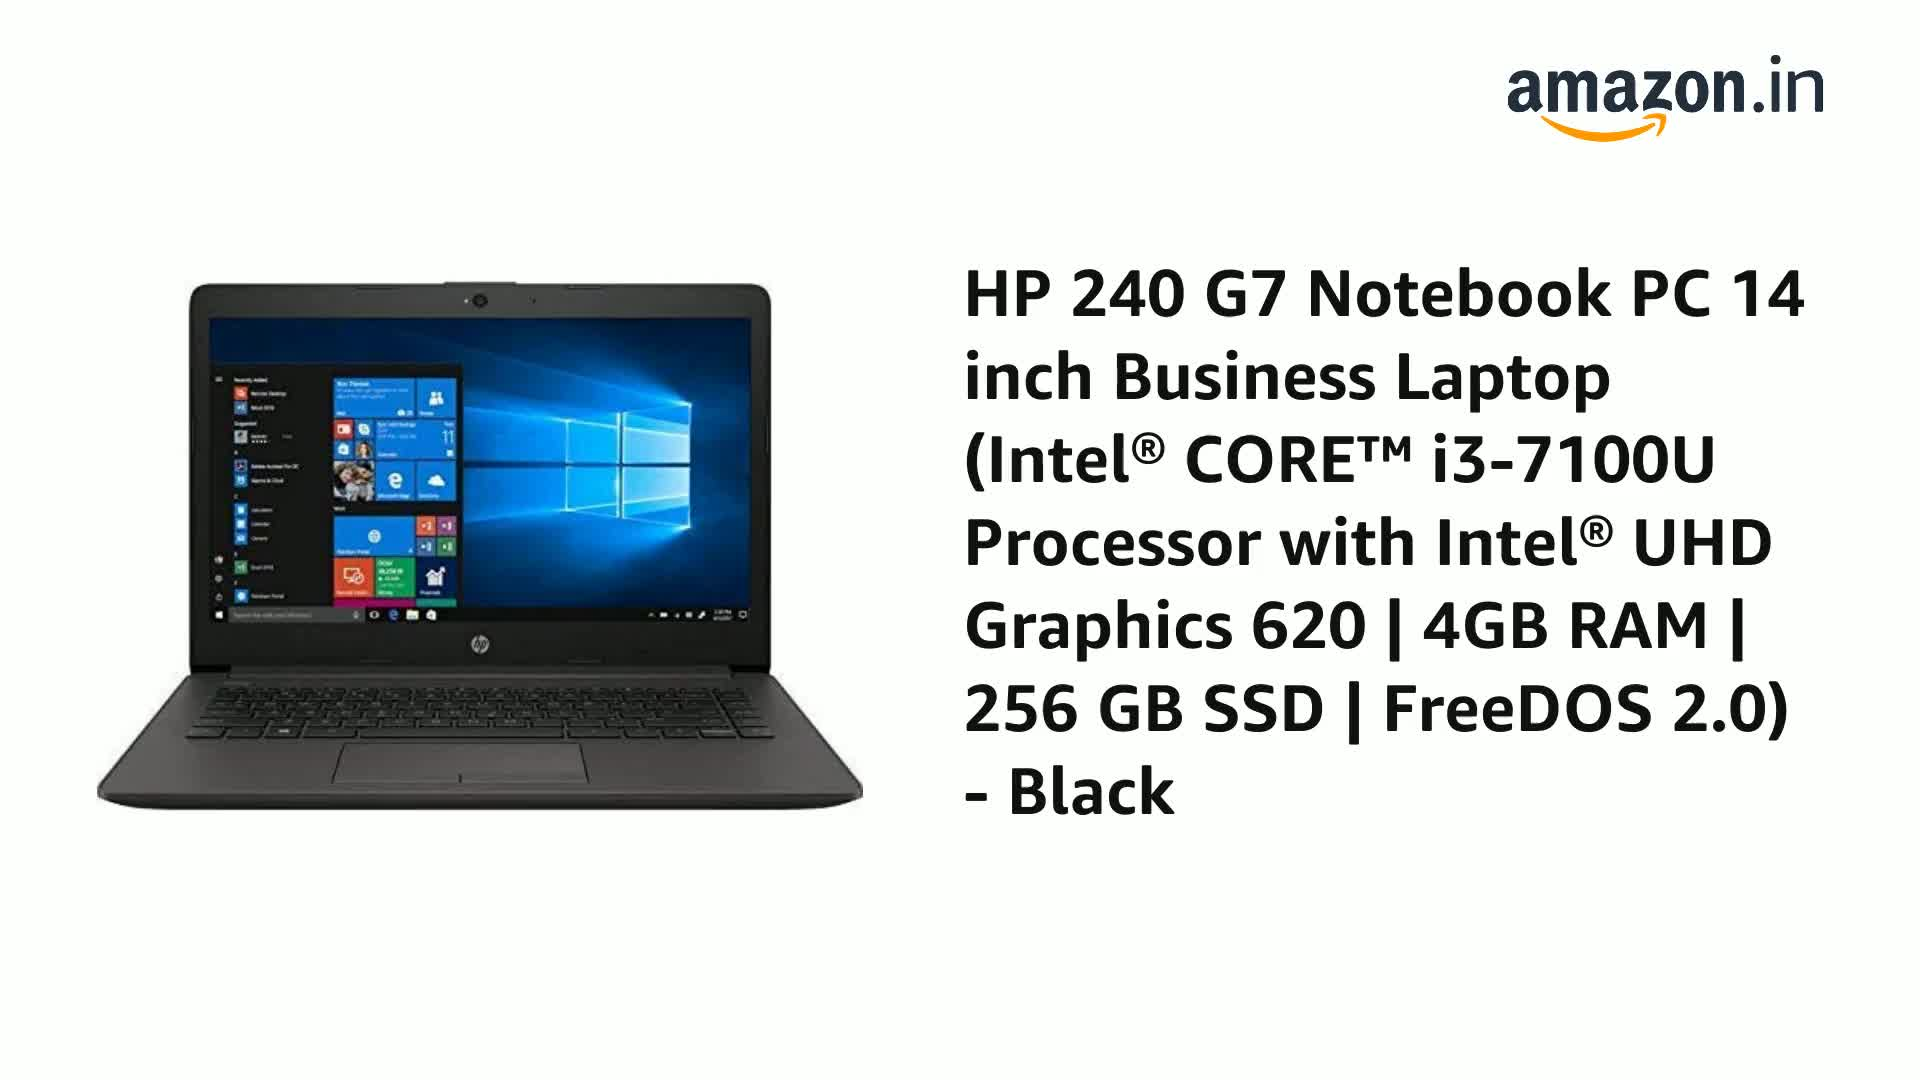 Buy Hp 240 G7 Notebook Pc 14 Inch Business Laptop Intel Core I3 7100u Processor With Intel Uhd Graphics 620 4gb Ram 256 Gb Ssd Freedos 2 0 Black Online At Low Prices In India Amazon In